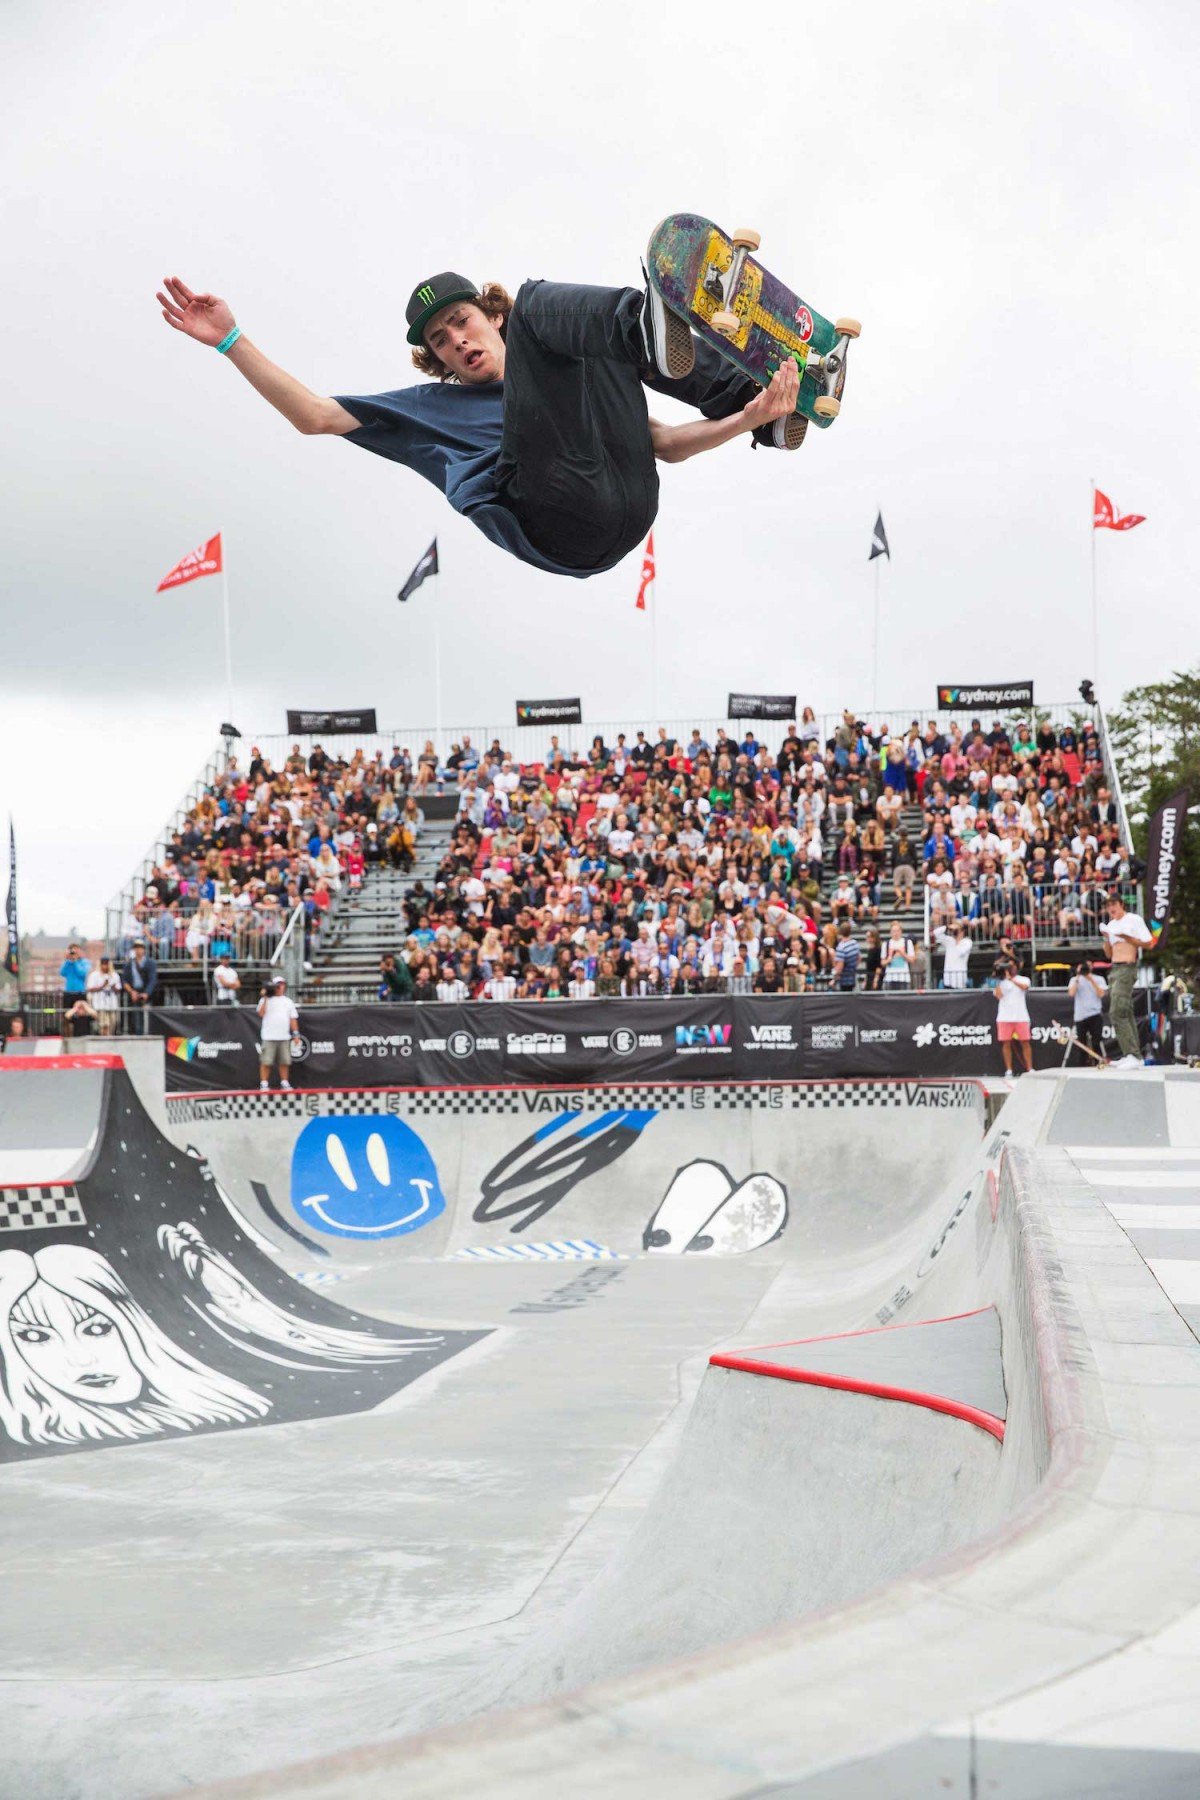 VANS PARK SERIES | THE FINALS - After a day of rain delay madness, Tom Schaar takes it!...